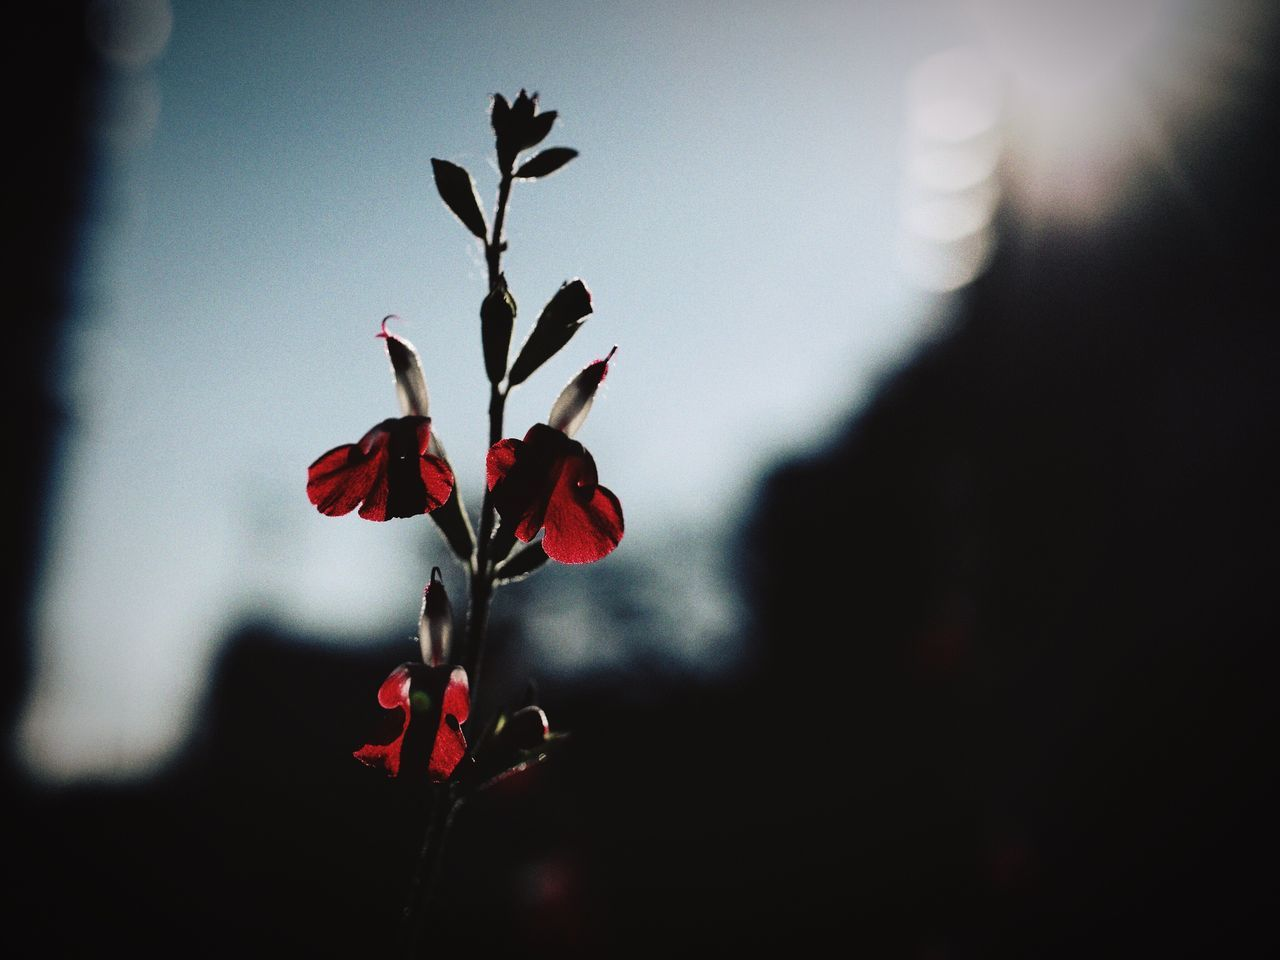 Flowers Sage Close-up Light And Shadows Sky And Clouds Blooming Winter Sky Streetphoto Shillouette